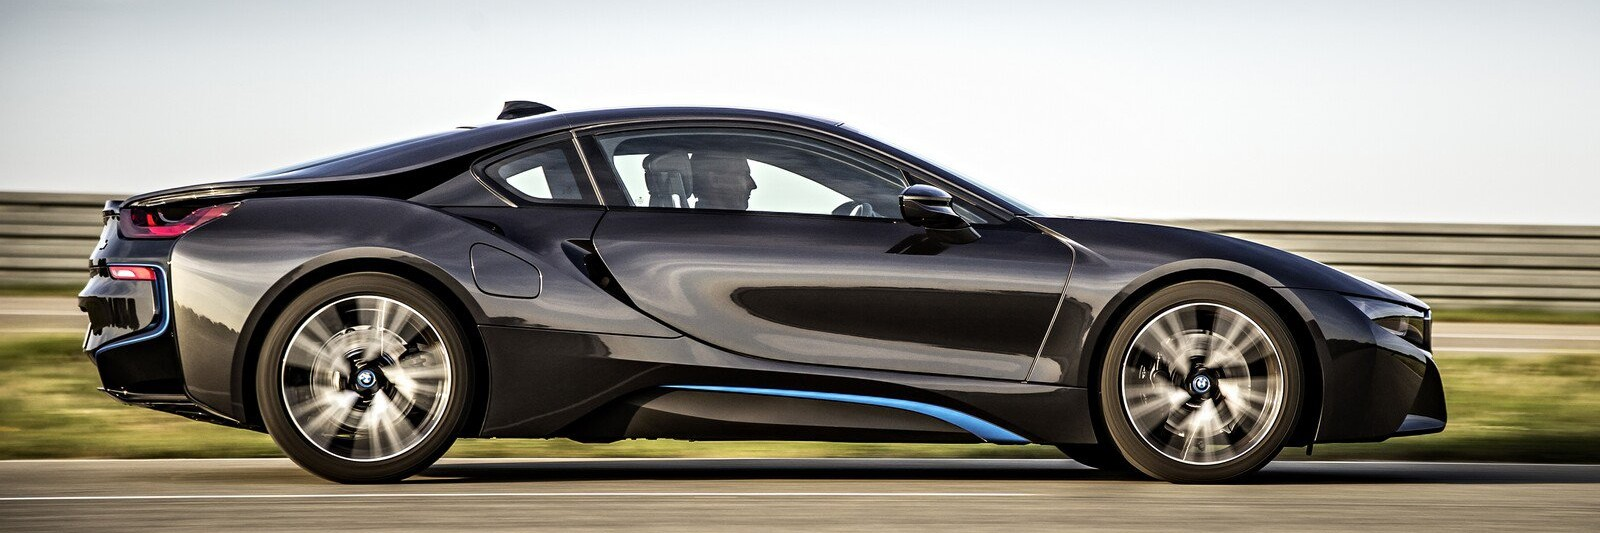 Bmw Hybrid Electric In Production